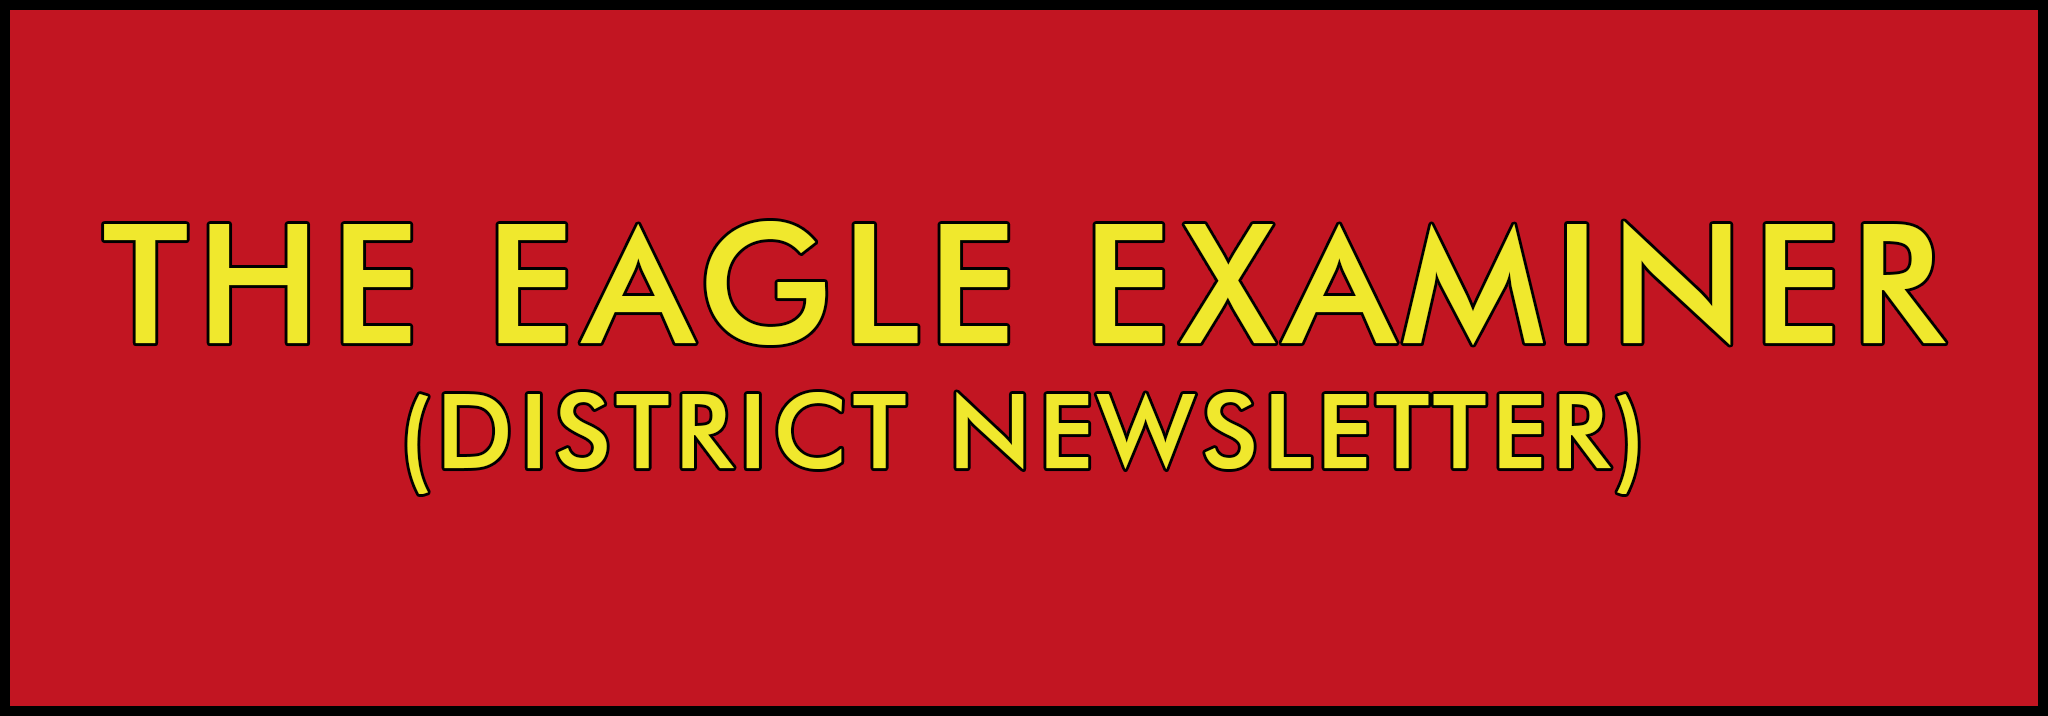 The Eagle Examiner